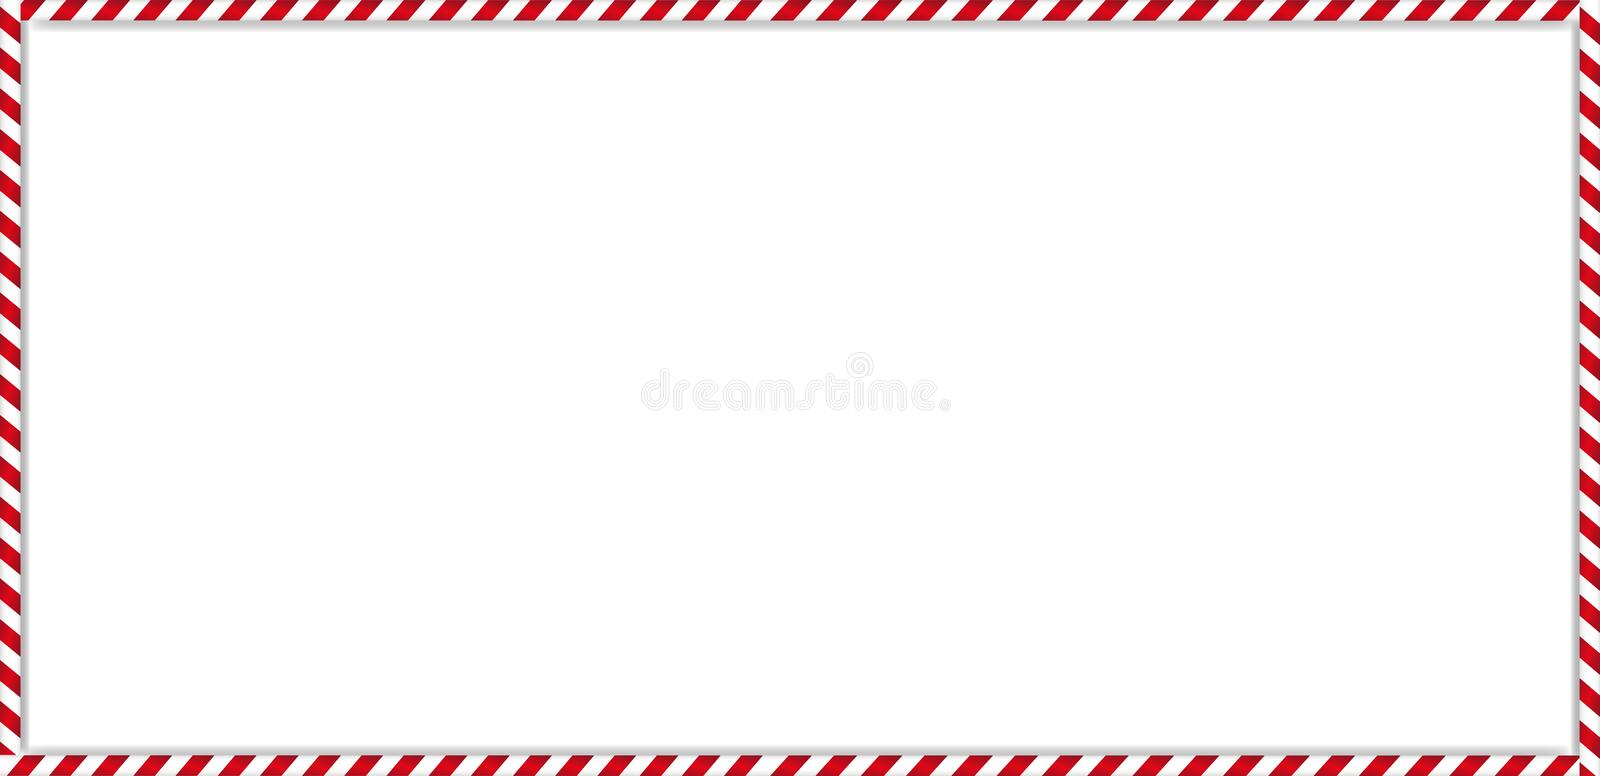 Rectangle candy cane frame with red and white striped lollipop pattern on white background. stock illustration